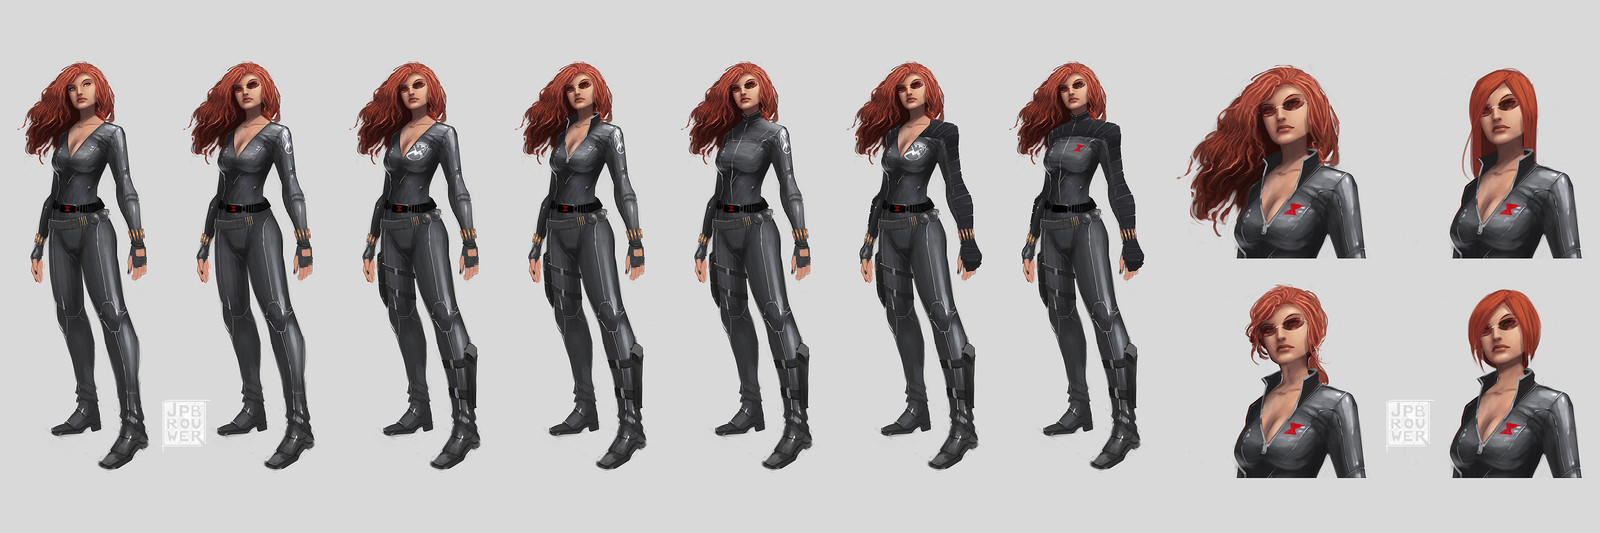 Black Widow character and costume concepts